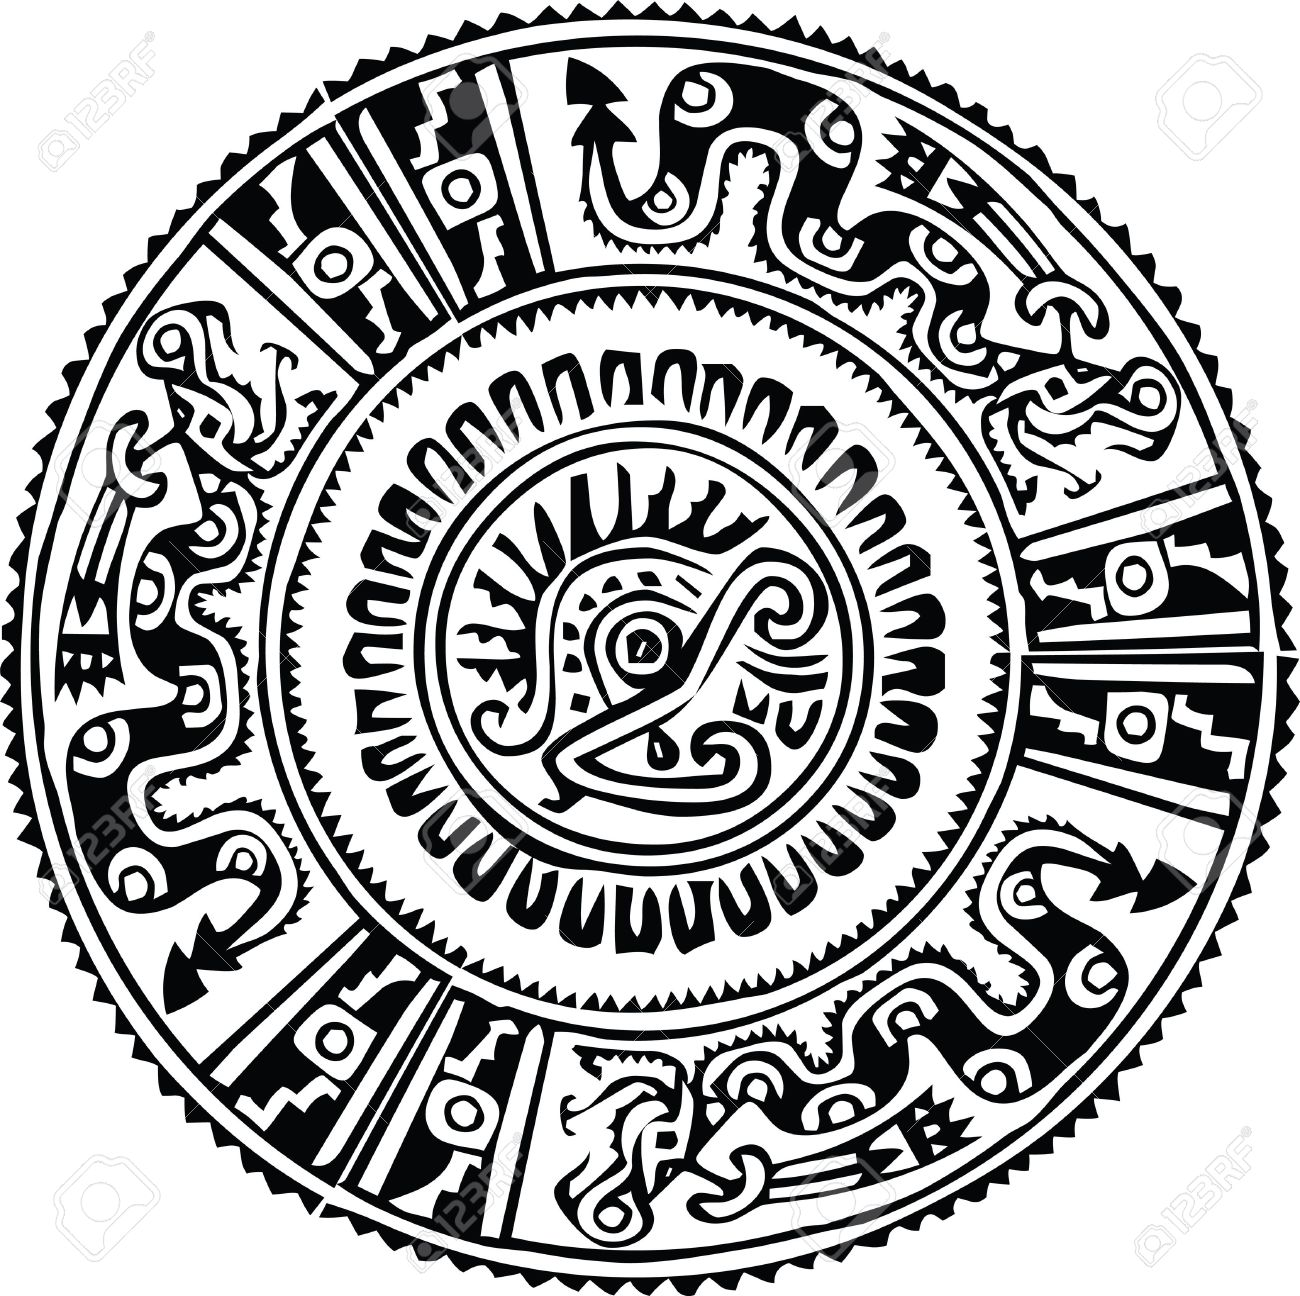 Mayan Calendar Drawing Easy : Ancient pattern vector illustration stock